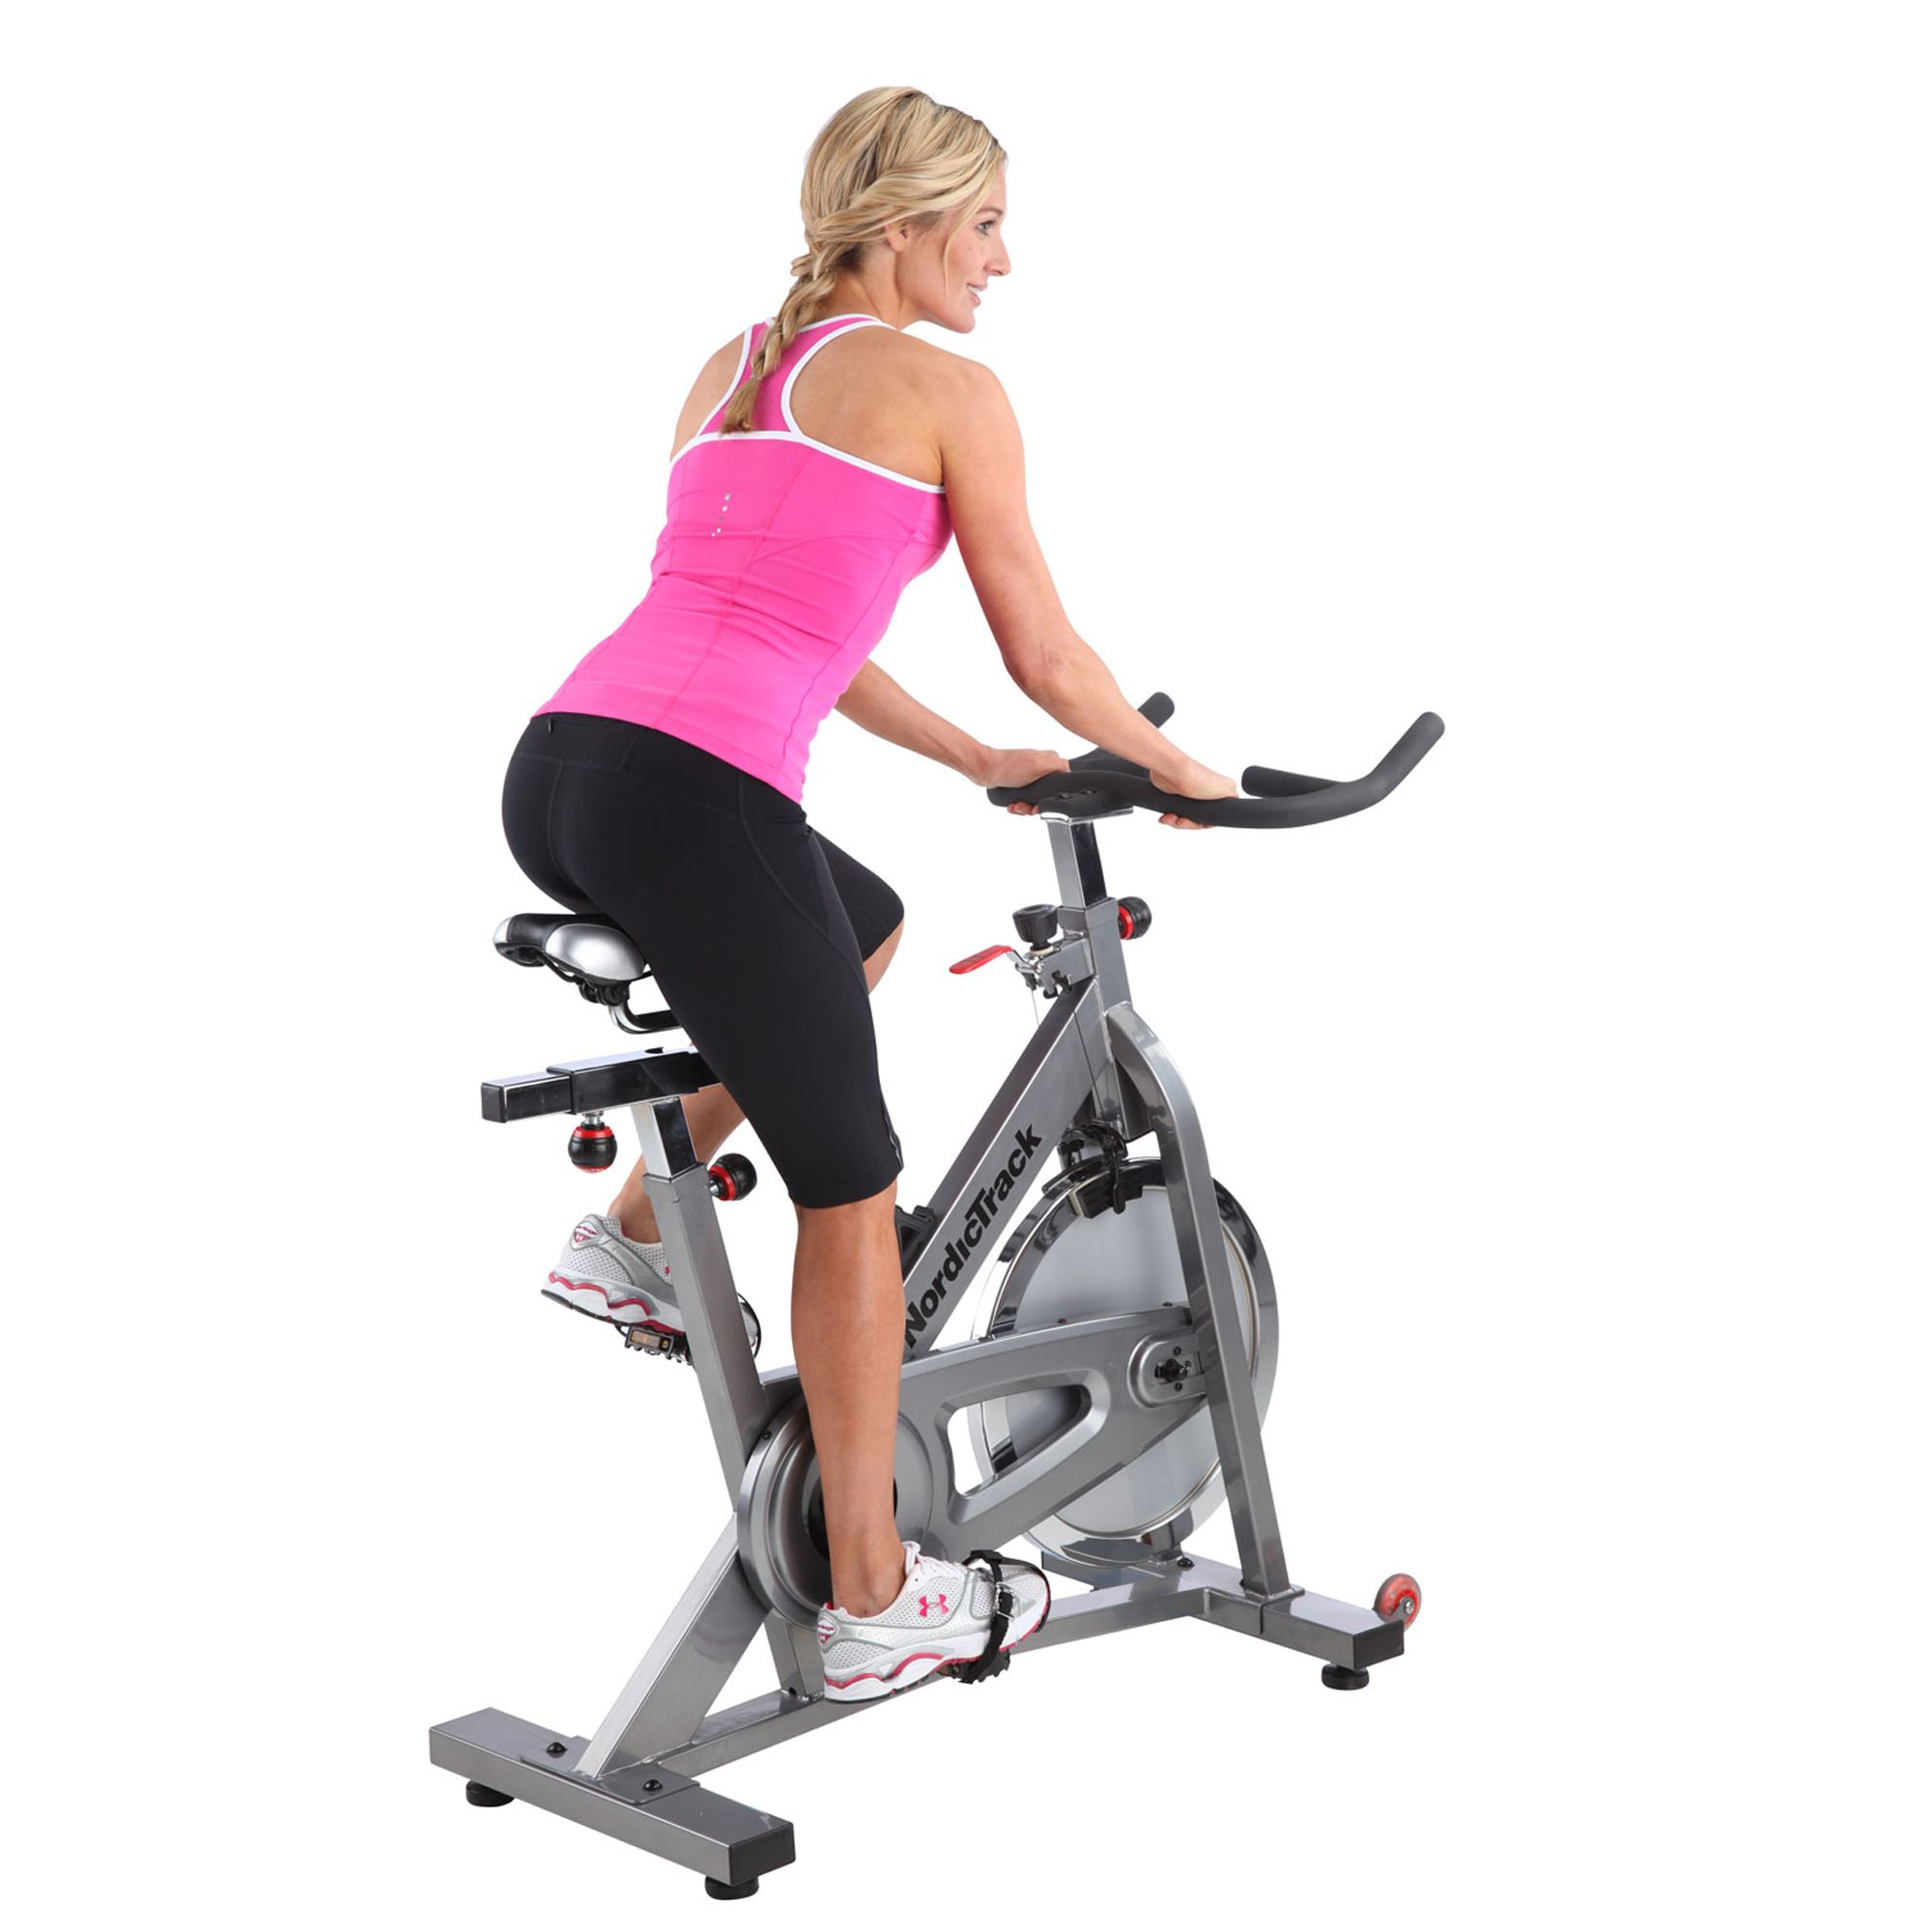 NordicTrack GX2 Sport Exercise Bike